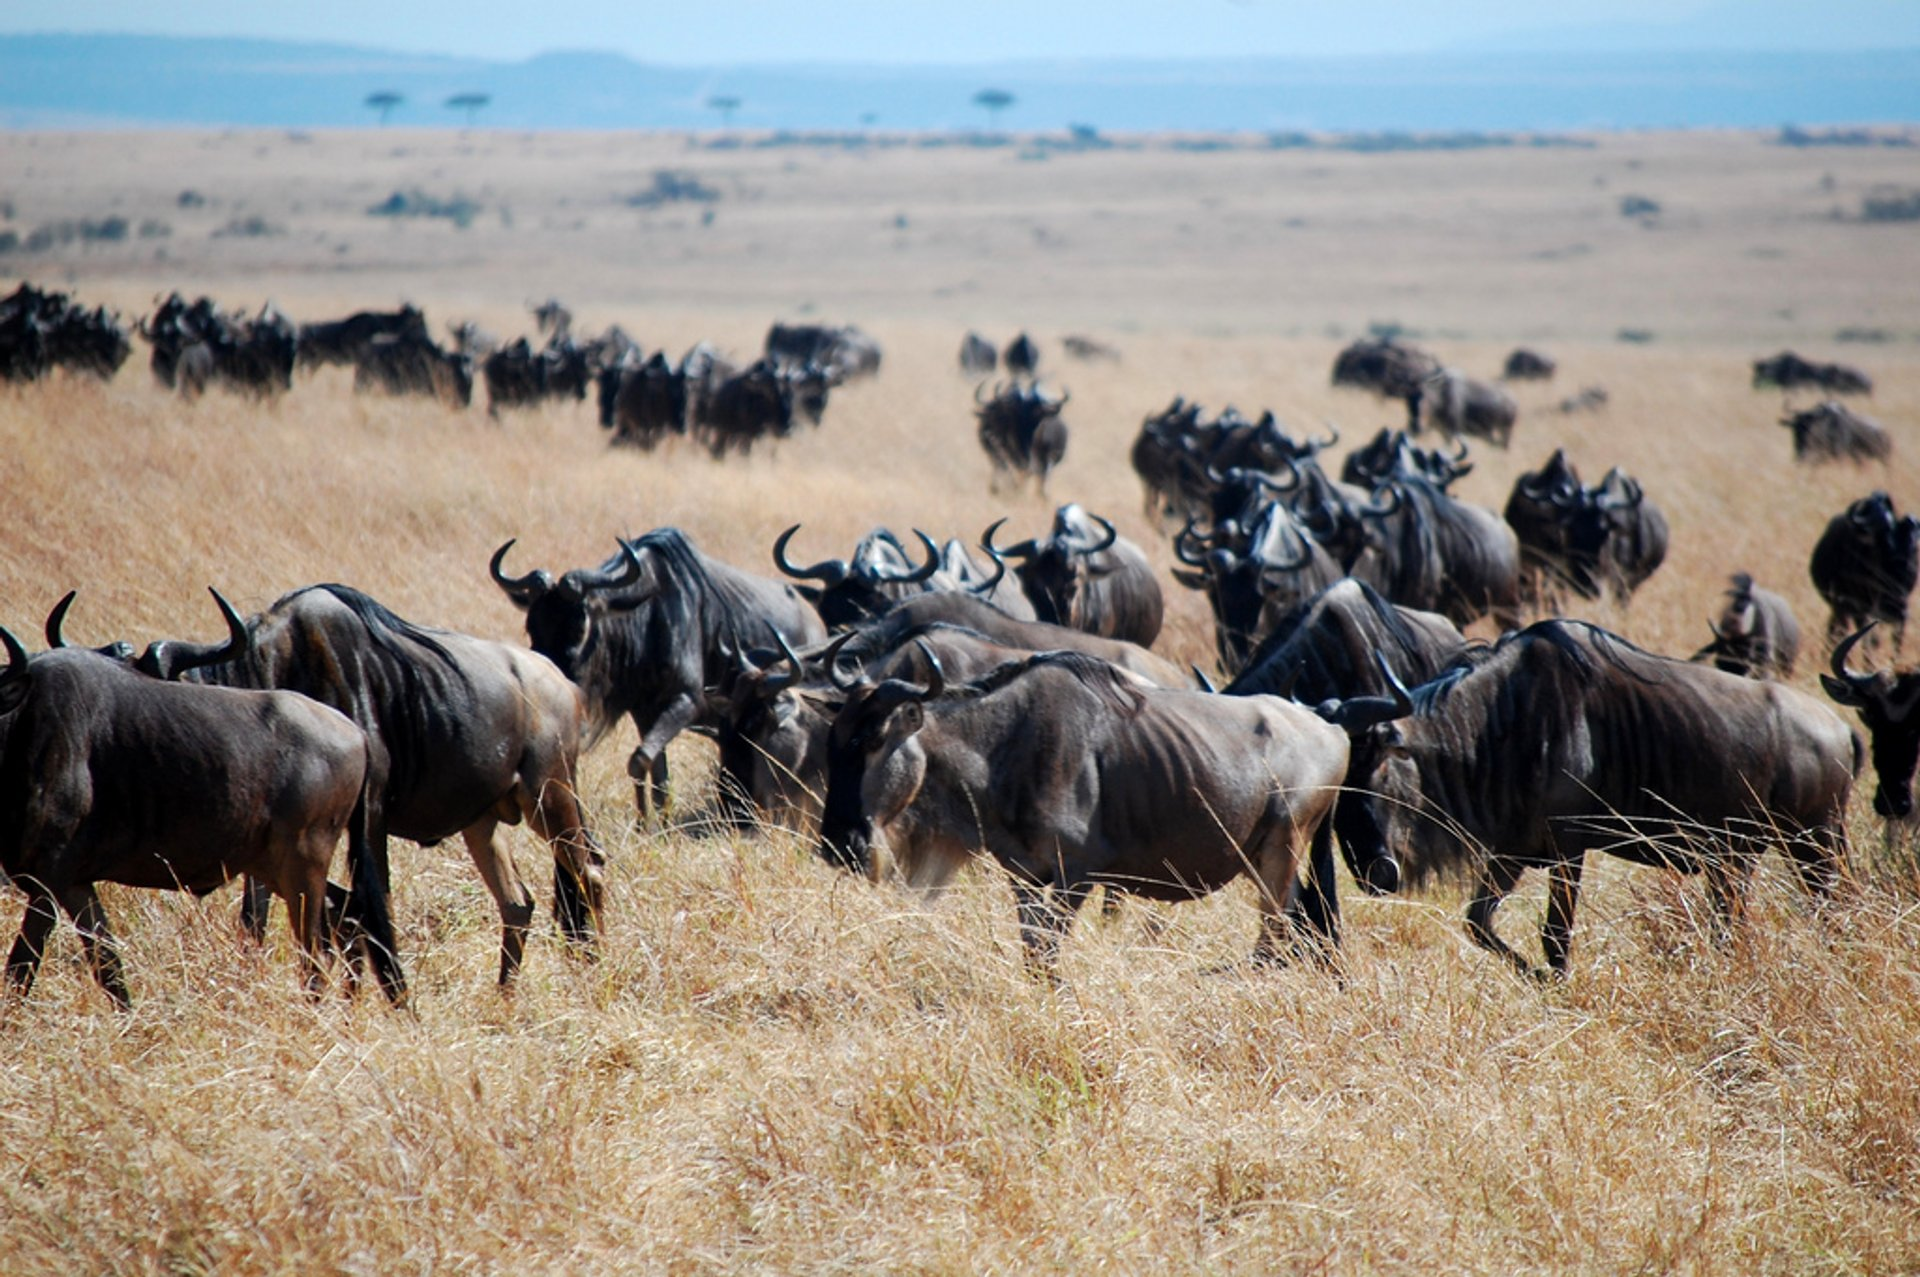 Wildebeest Migration in Kenya - Best Season